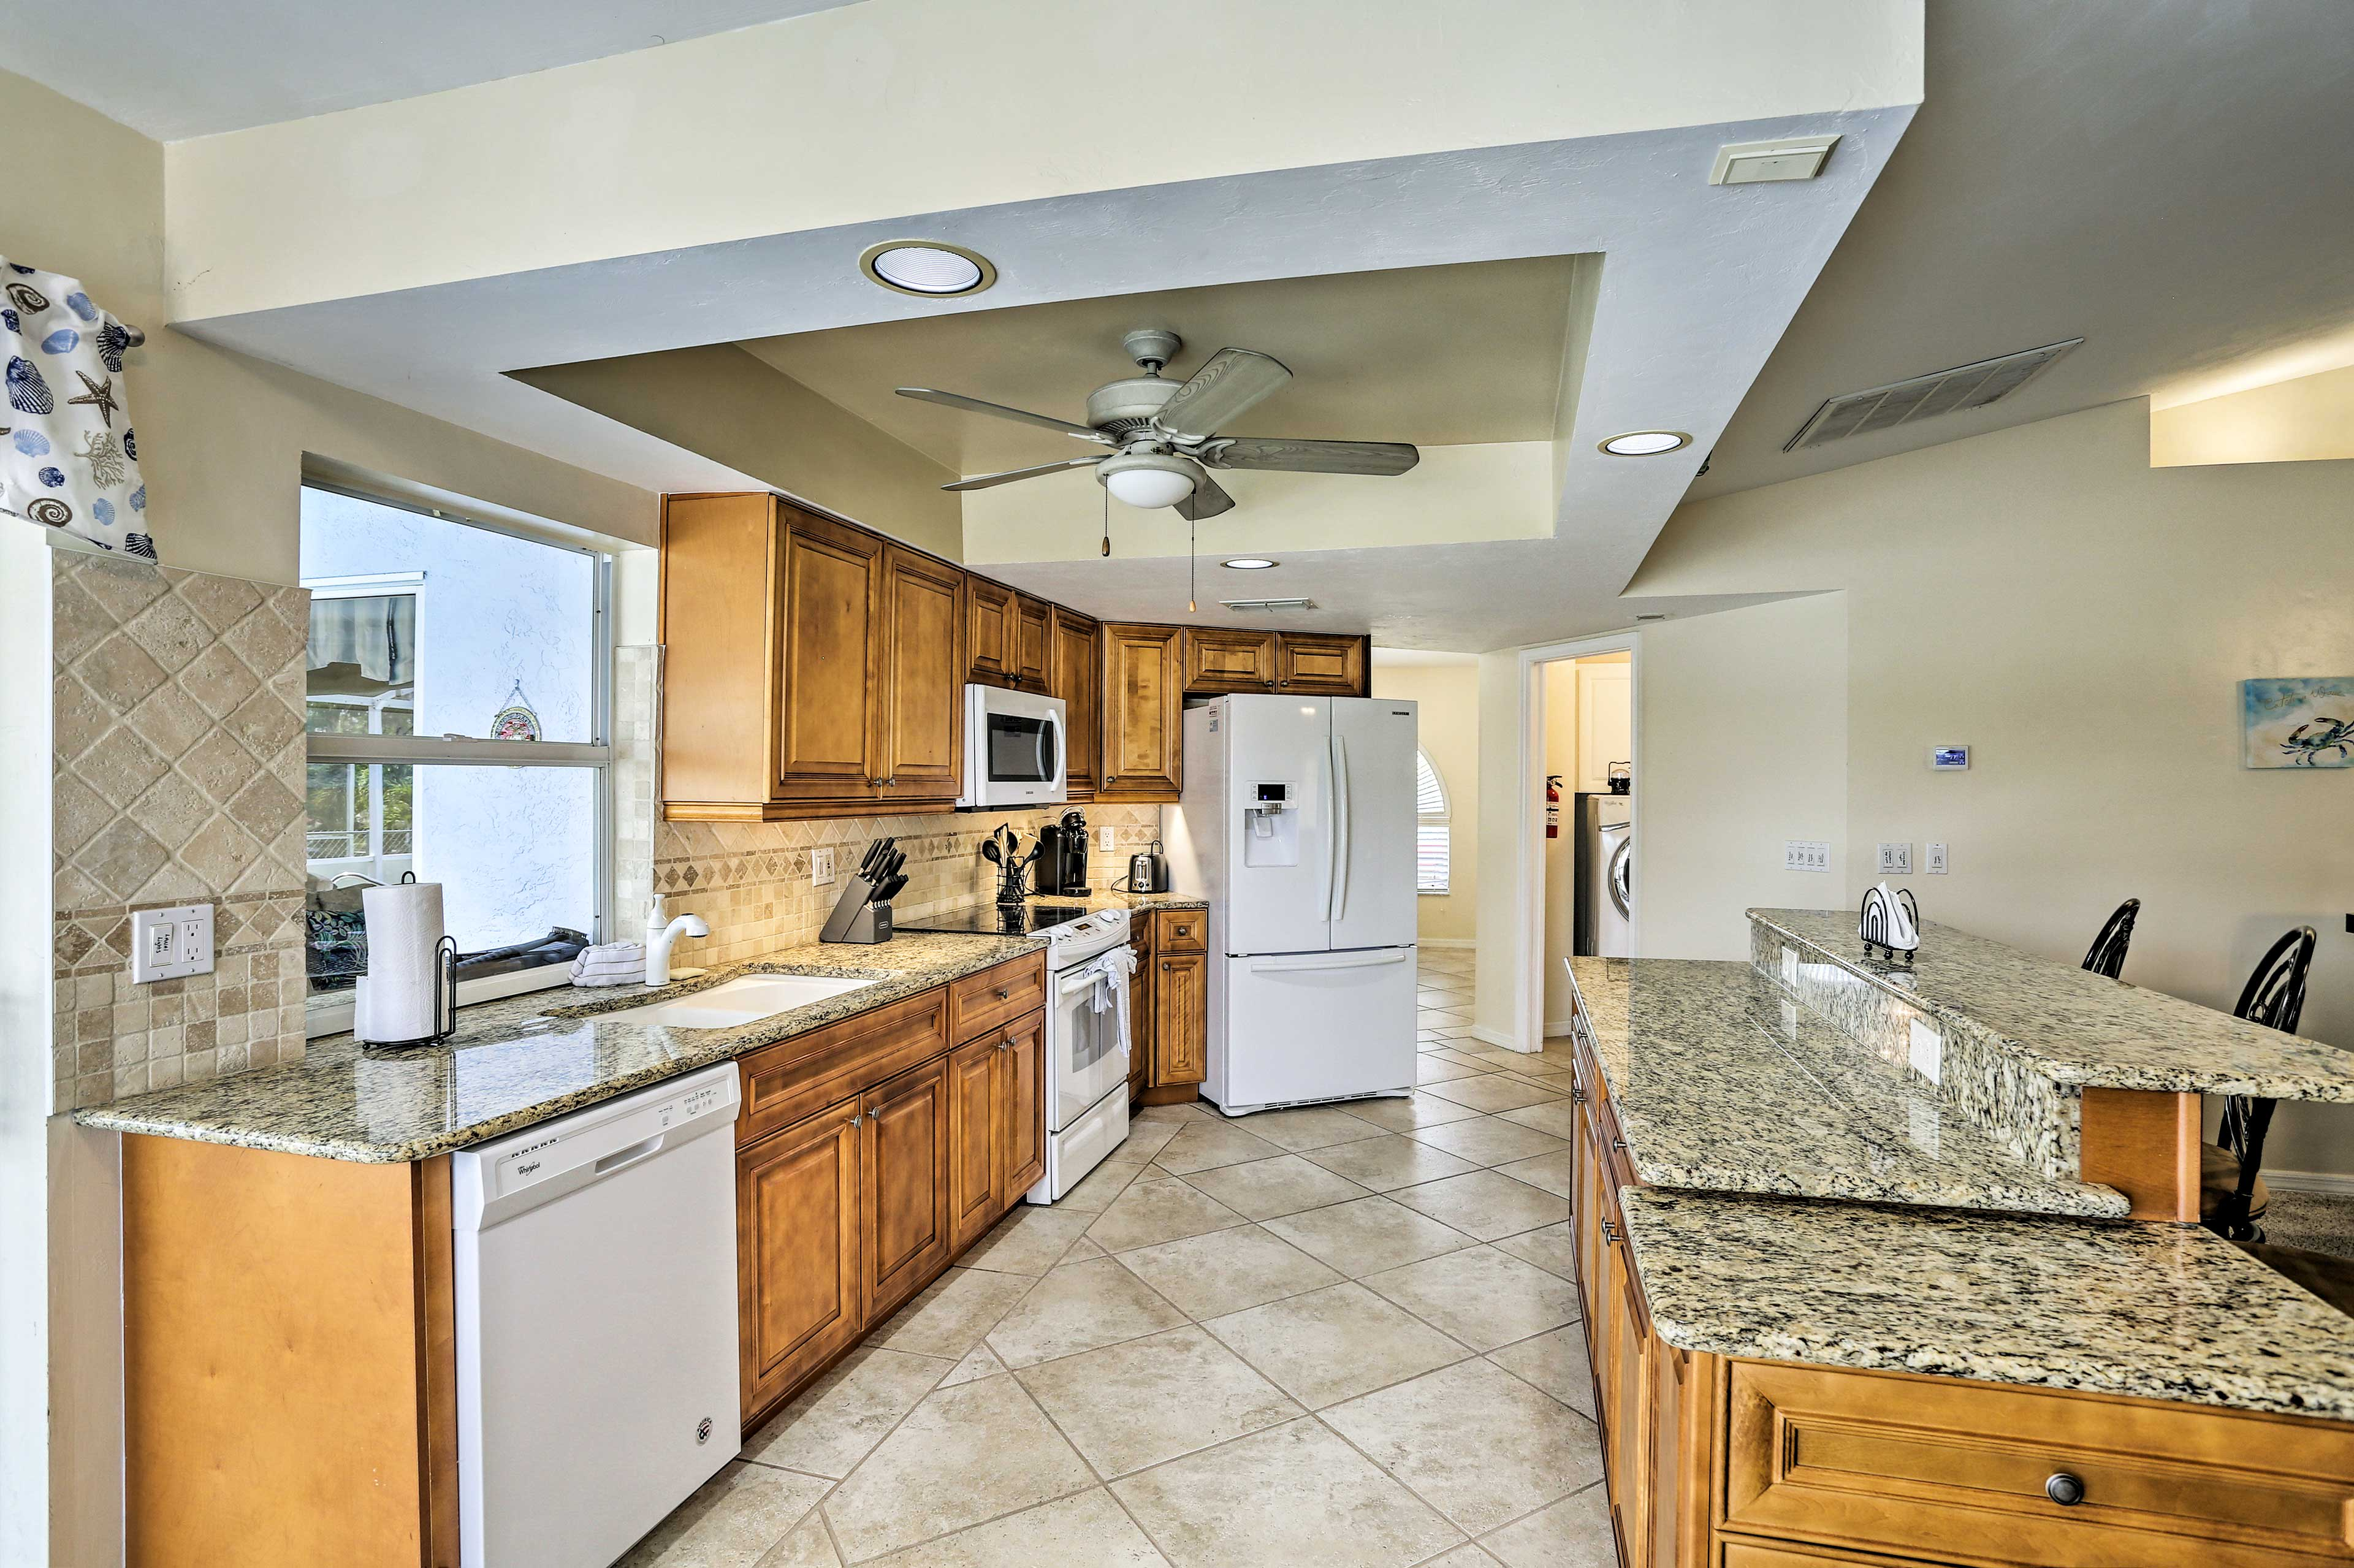 Prepare meals for your crew in the fully equipped kitchen.